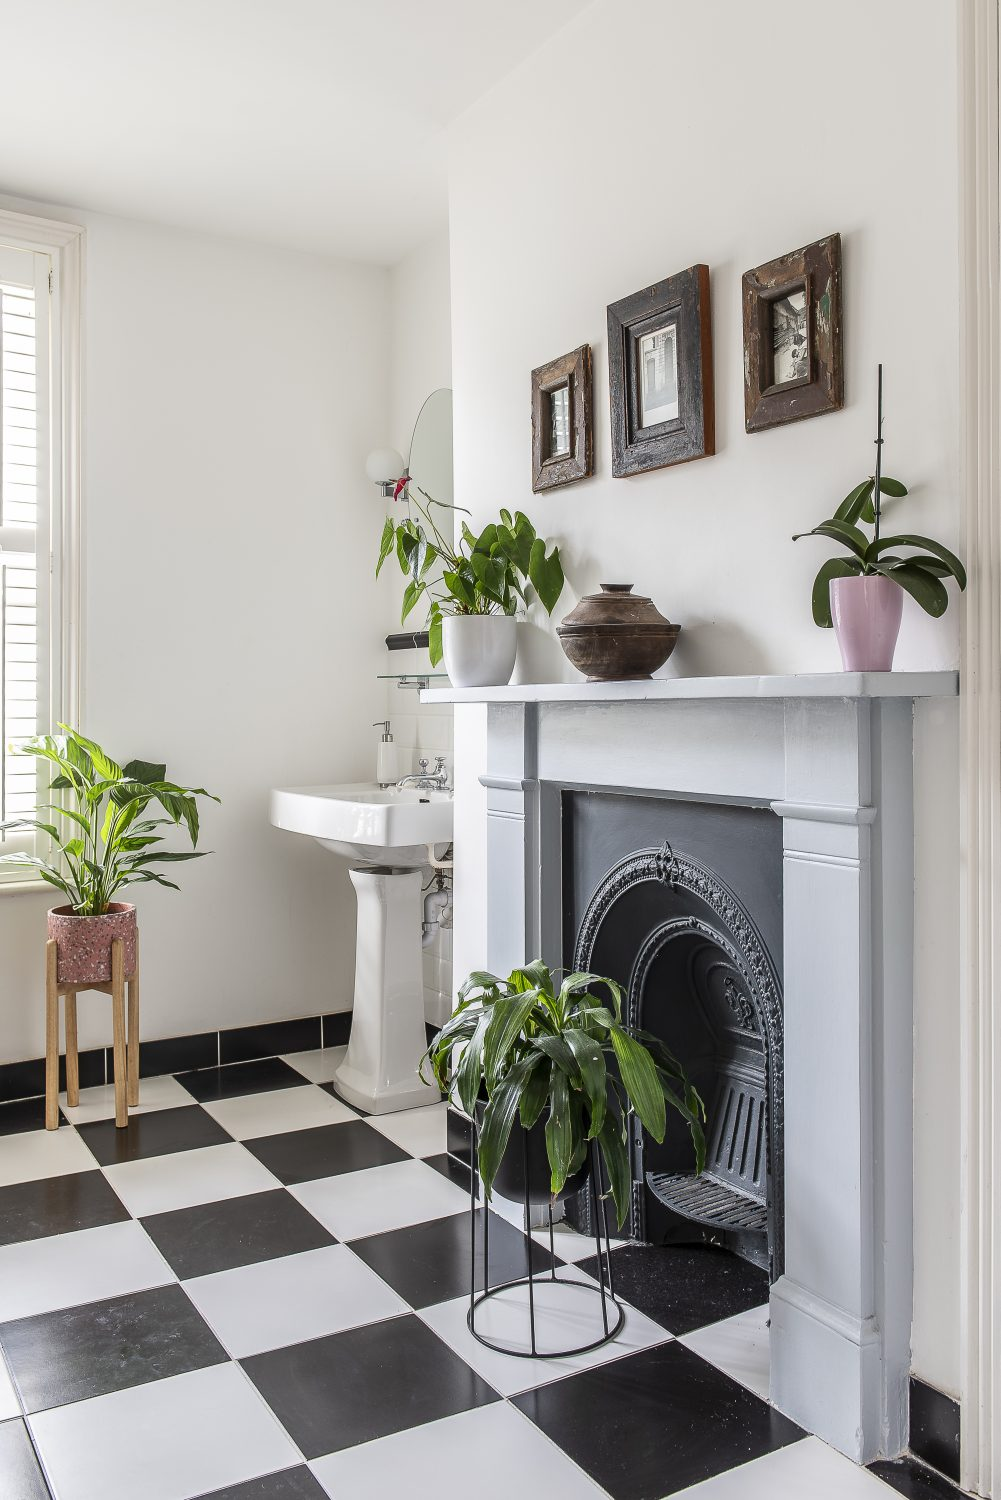 Houseplants and flowers are found in almost every room, from the bathroom to the bedrooms, the kitchen to the living rooms